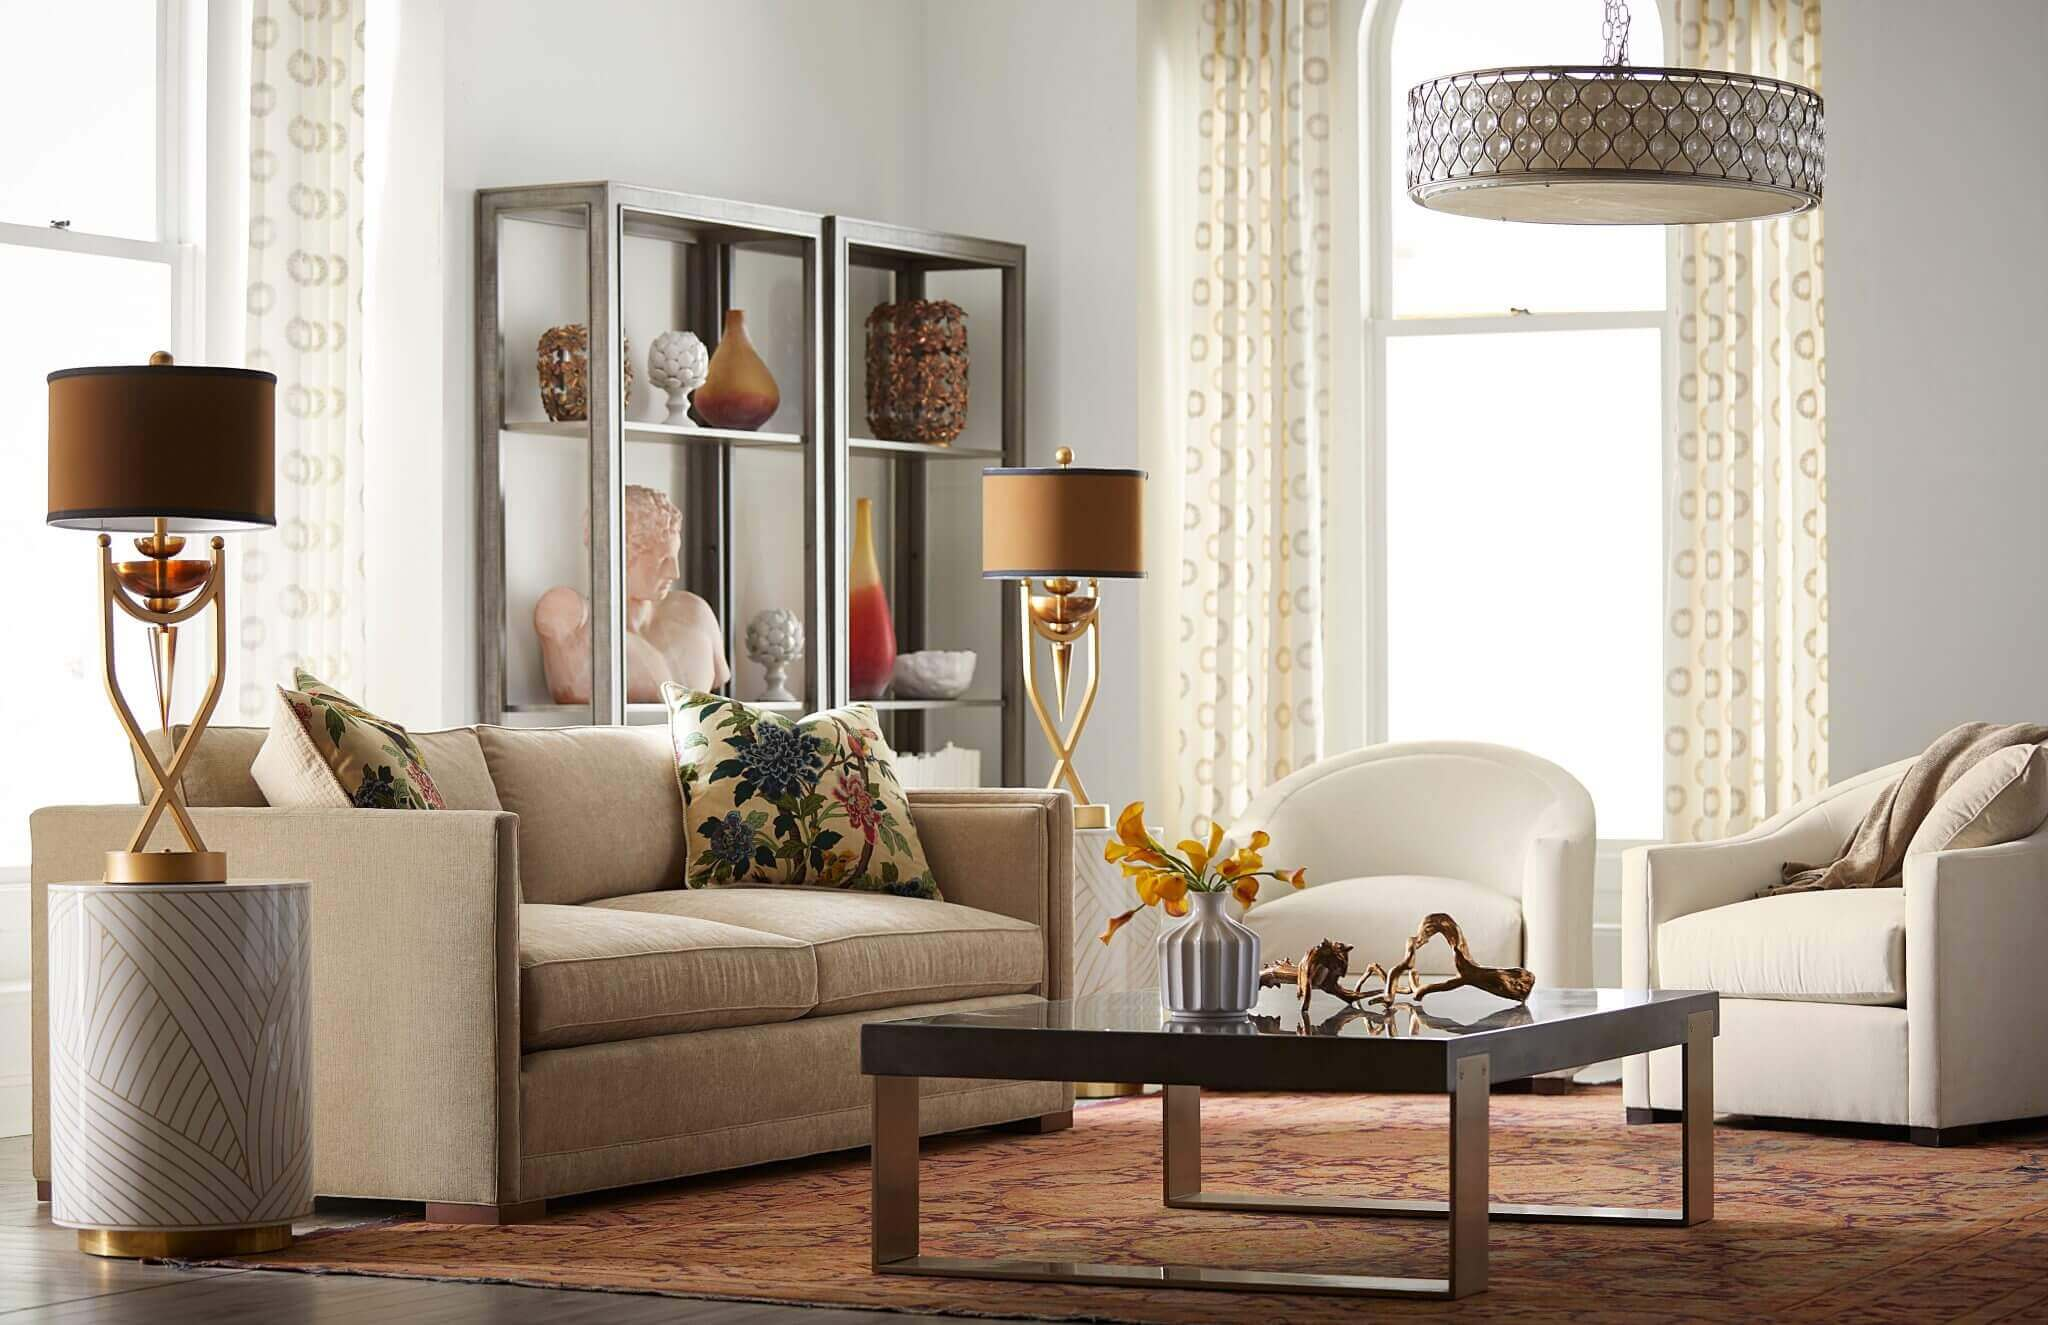 Living-EJ-Victor-Lyles-Sofa-Transitional-scaled.